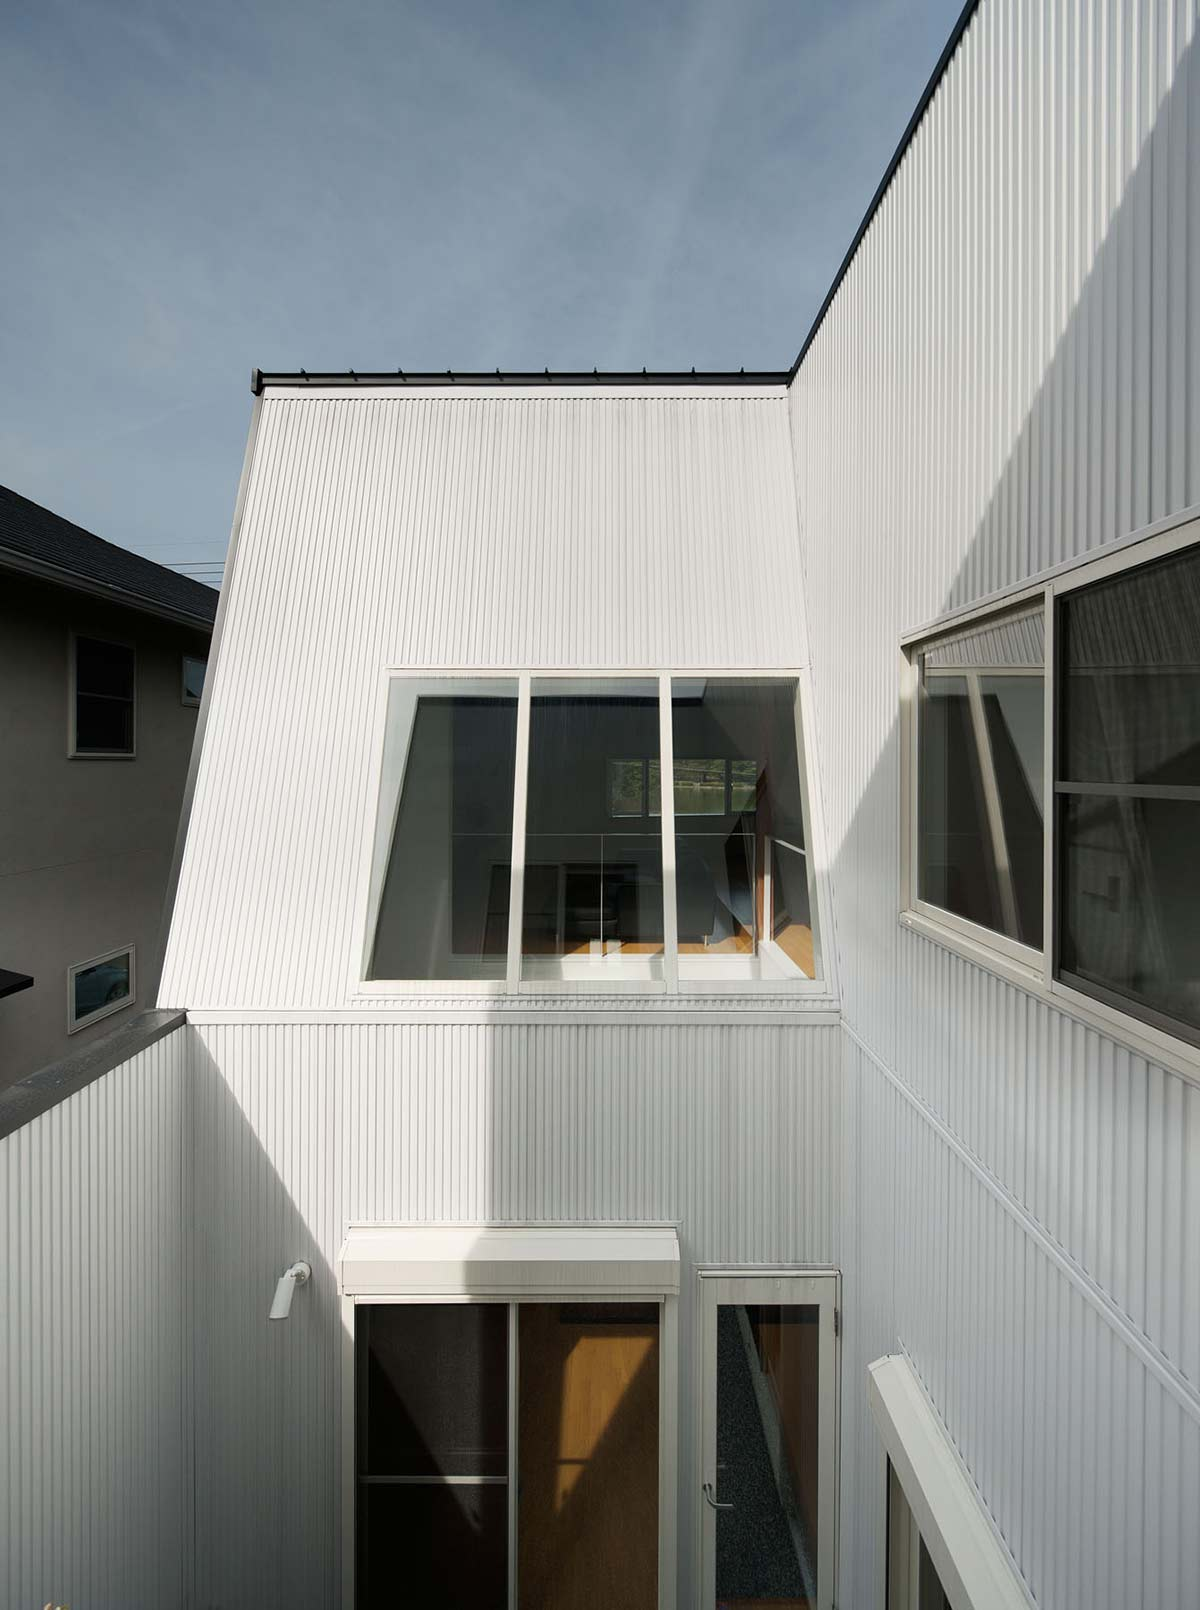 Courtyard, Hansha Reflection House, Nagoya, Japan